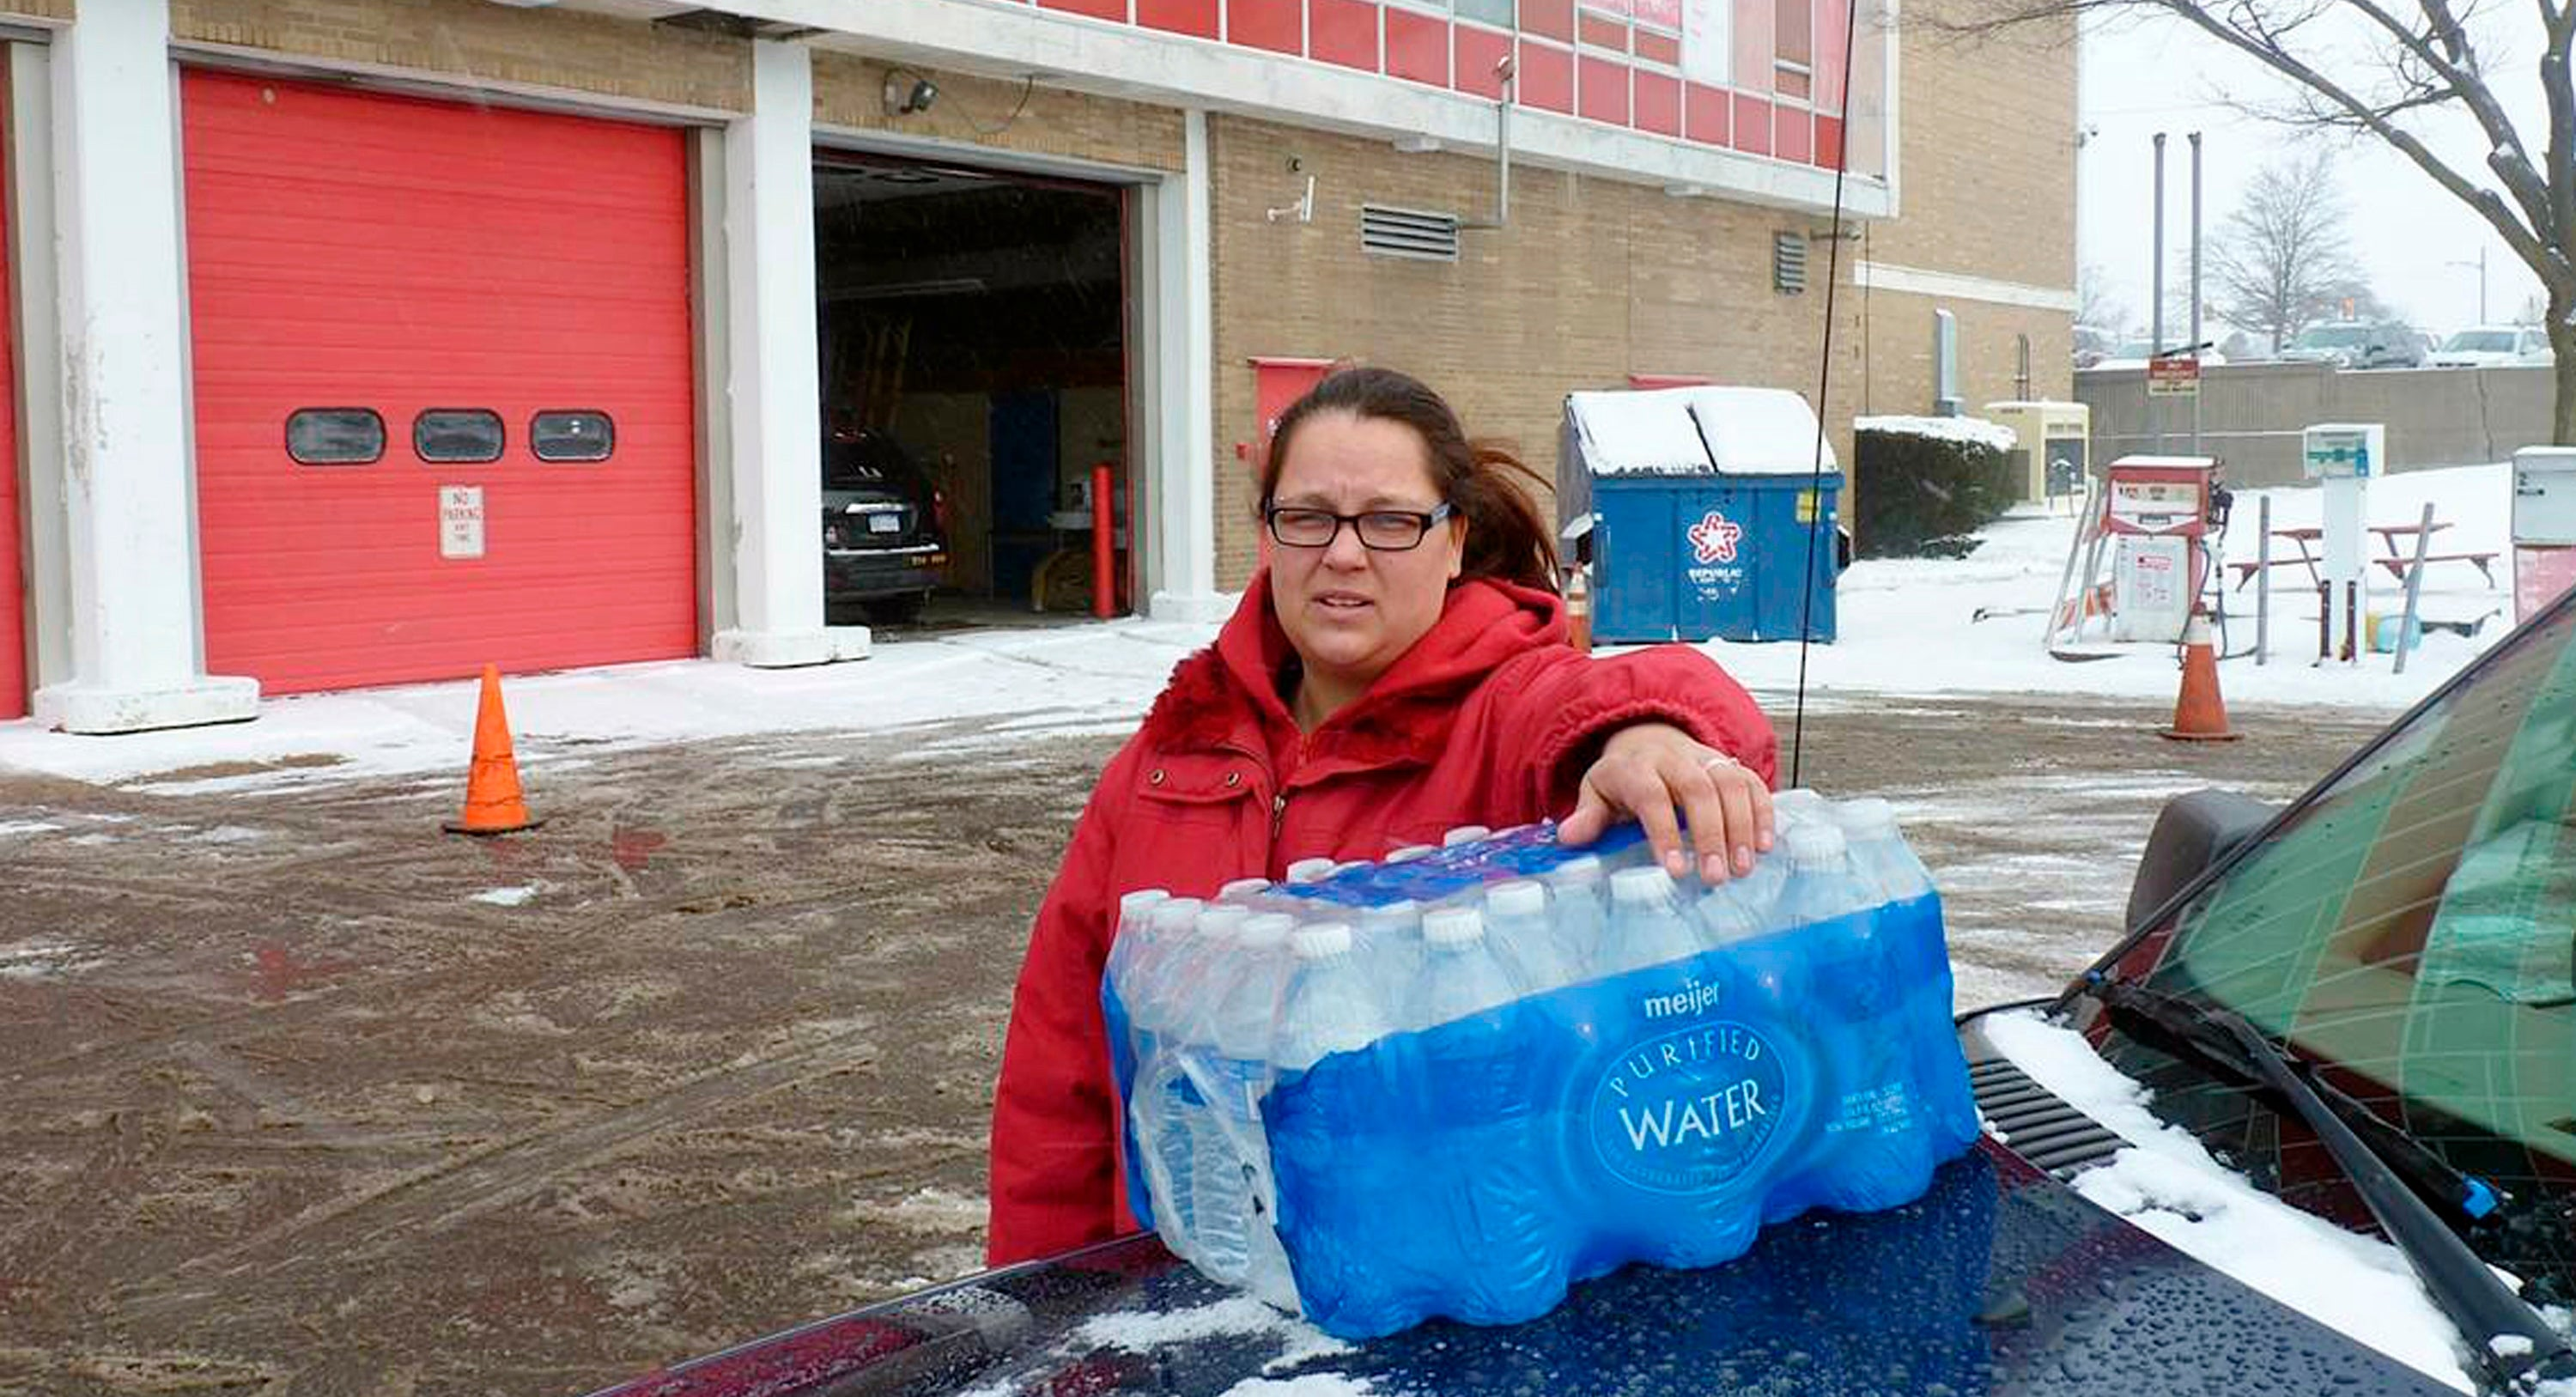 Dystopia: When Walmart Is Supplying Your City's Water